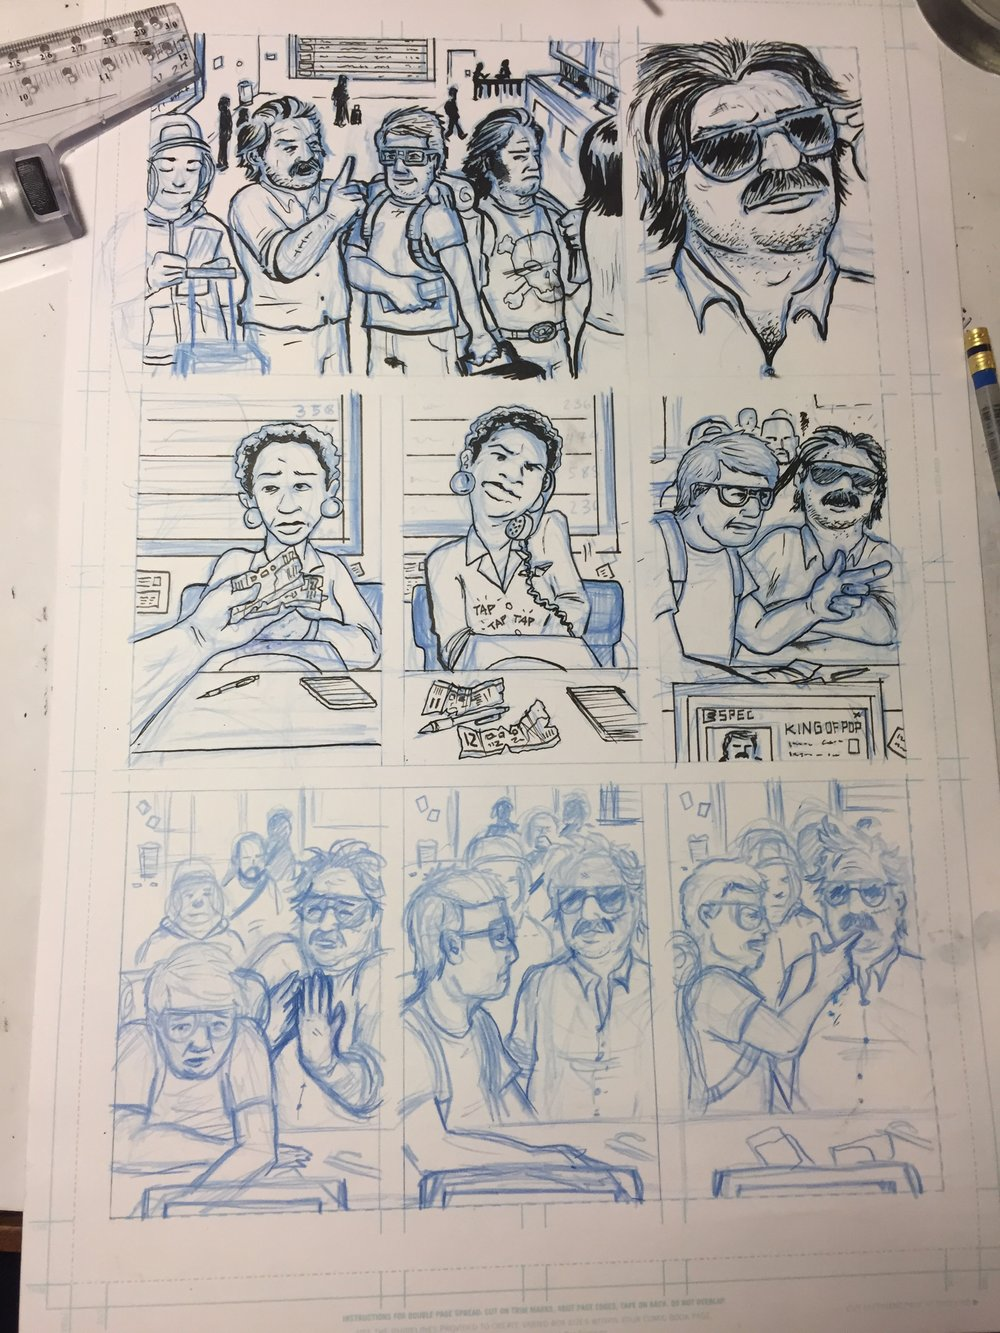 king of pop #2 page in progress